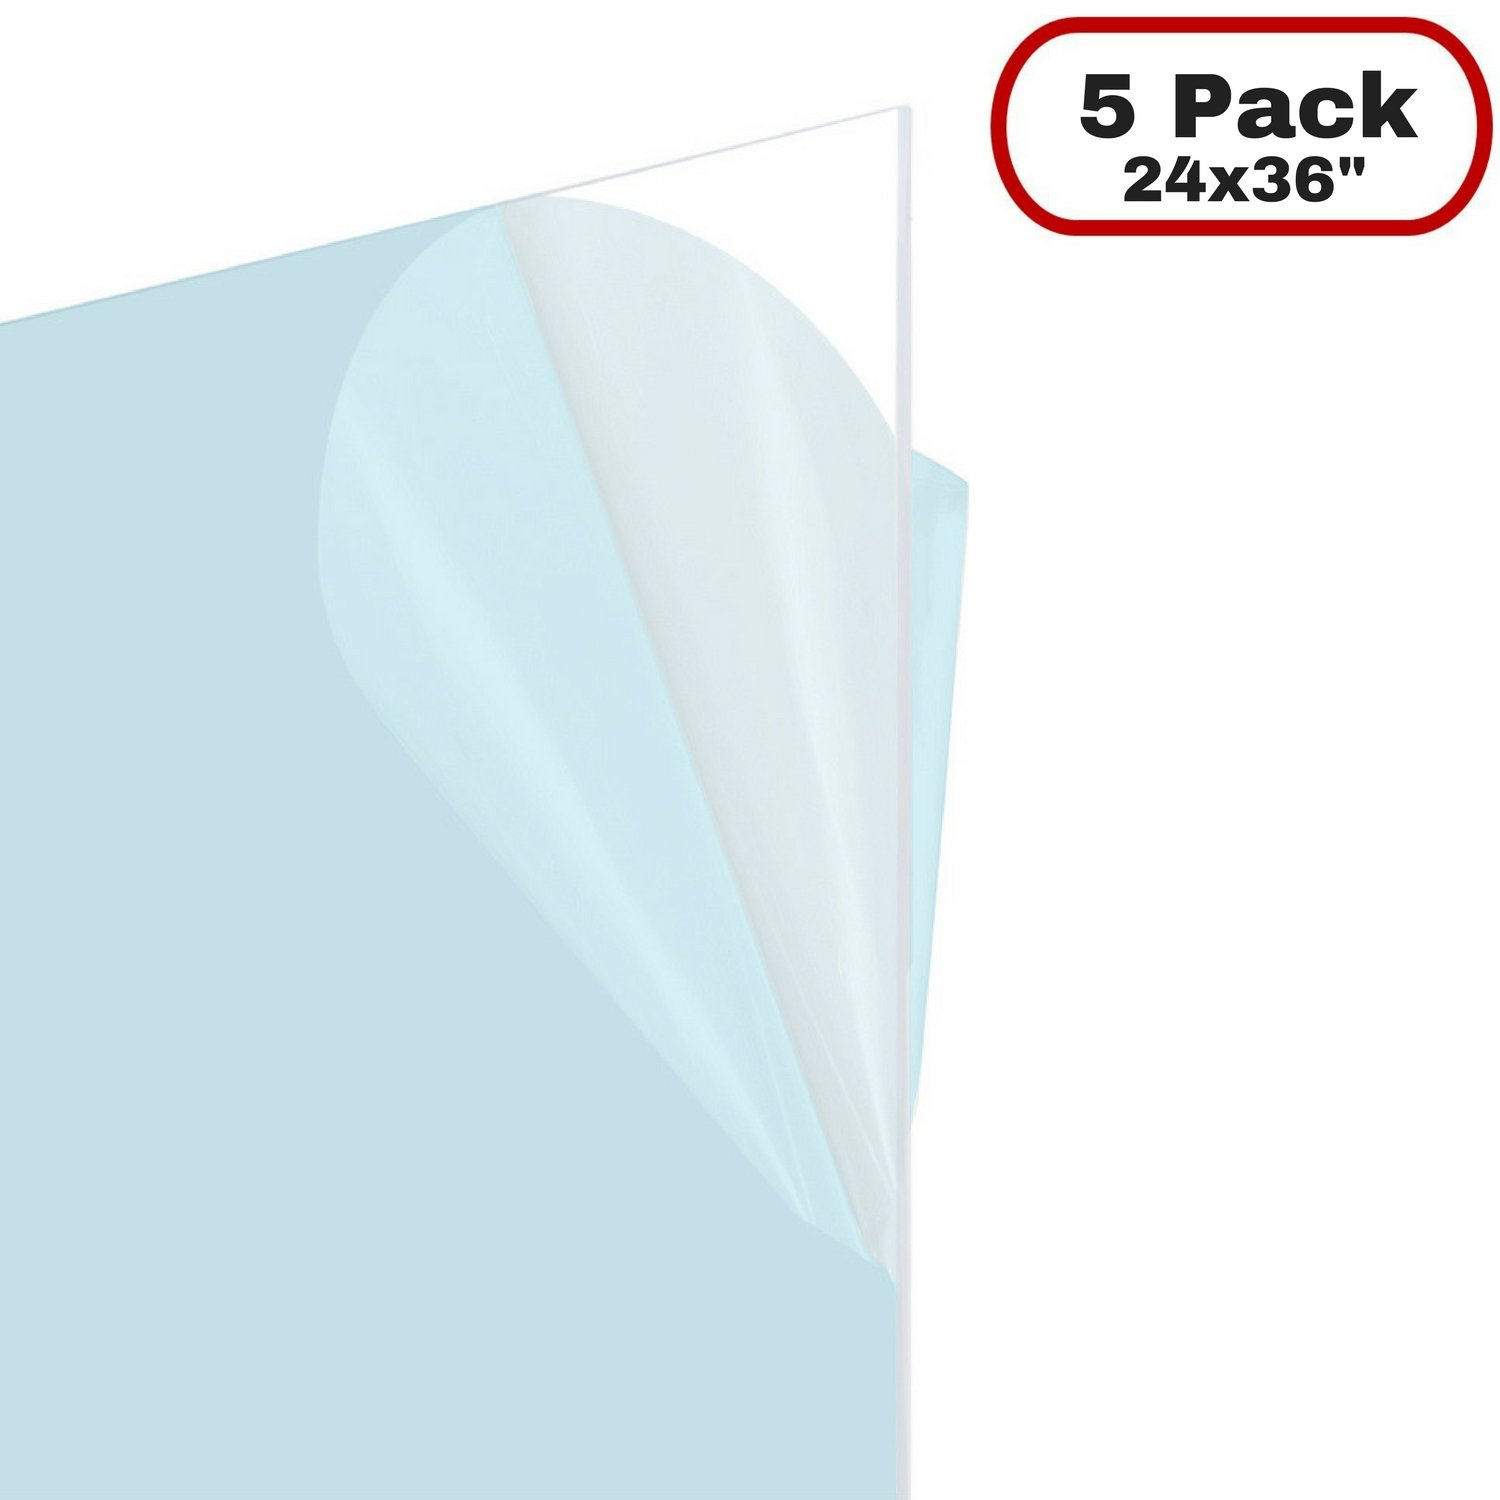 Icona Bay PET Replacement for Picture Frame Glass (24 x 36, 5 Pack) PET is Ideal Replacement Glass Material, Avoid Glass Shattering, Your Superior Replacement Picture Frame Glass Has Arrived